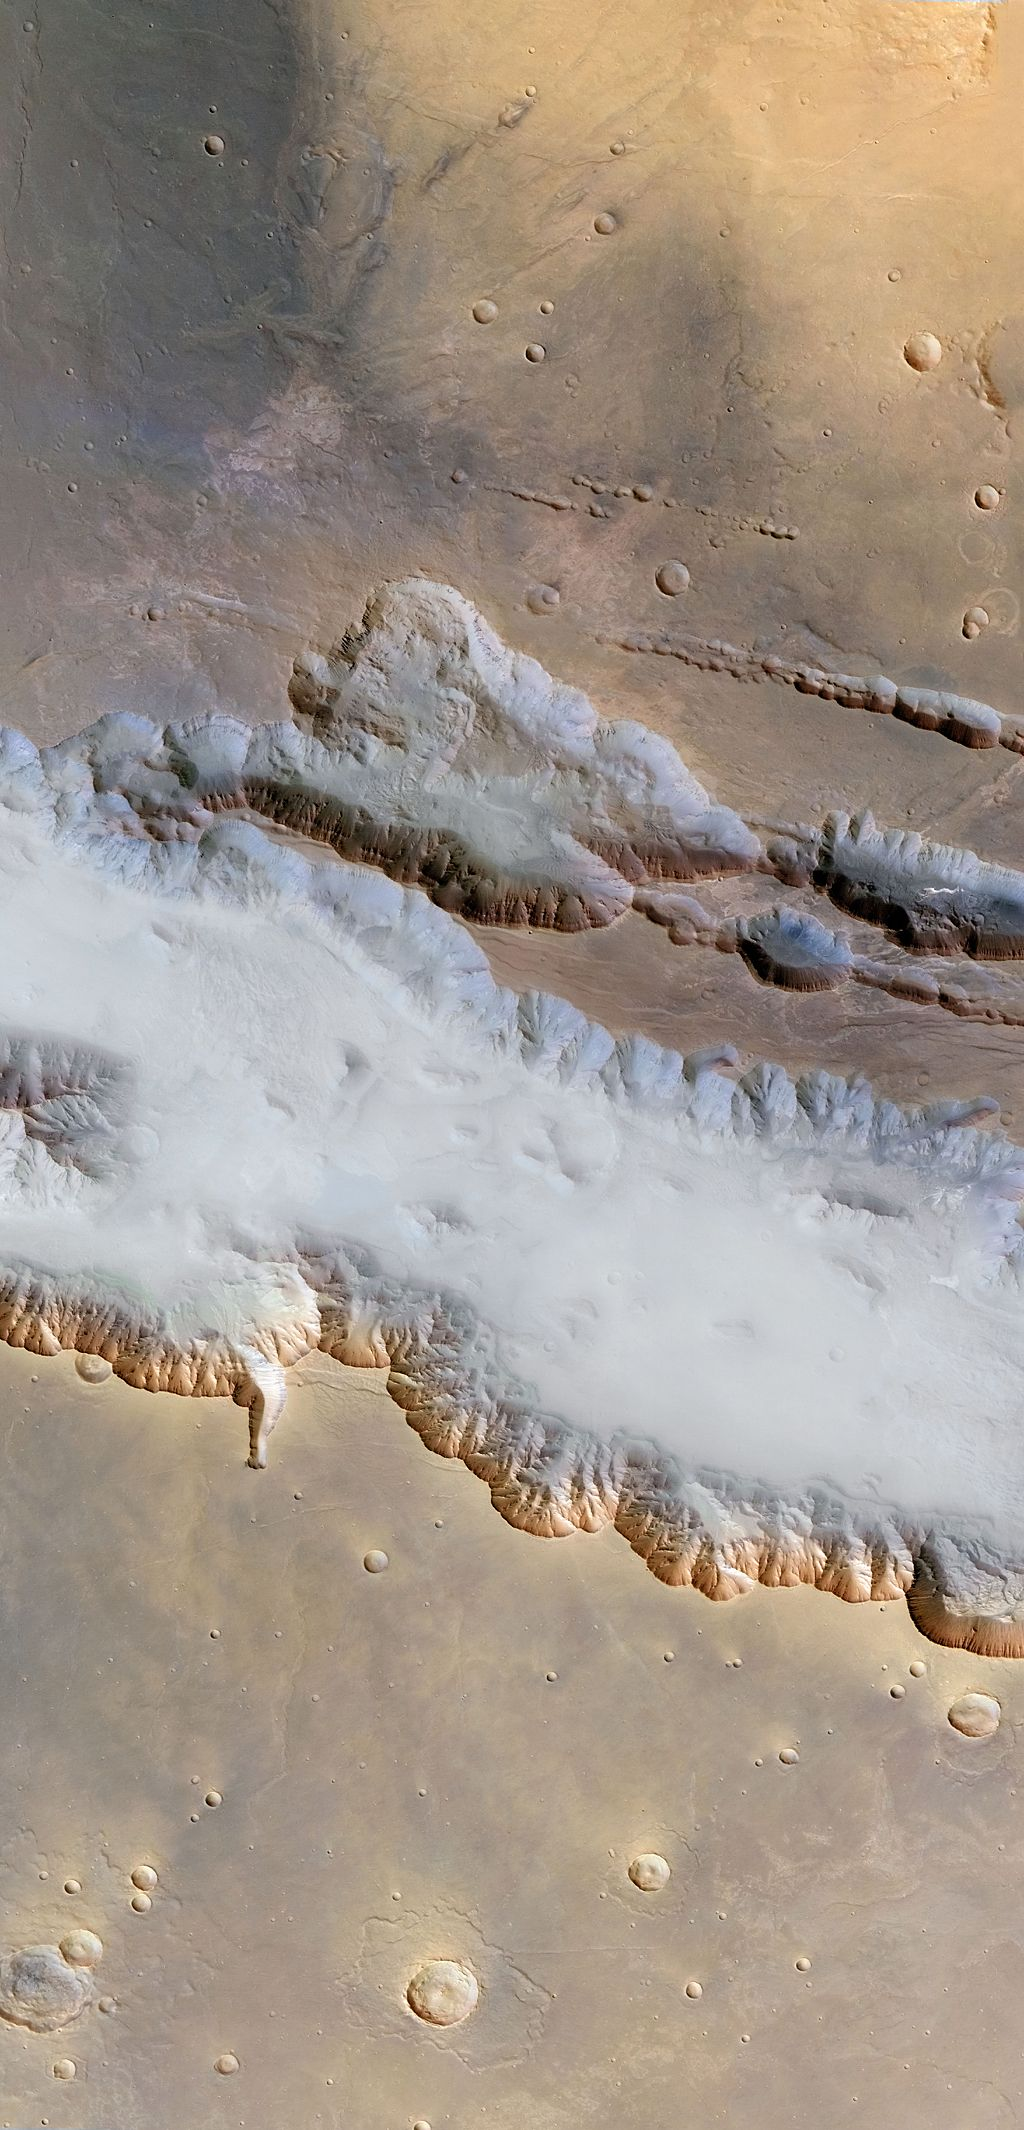 Ground fog in Valles Marineris, Mars, 2004